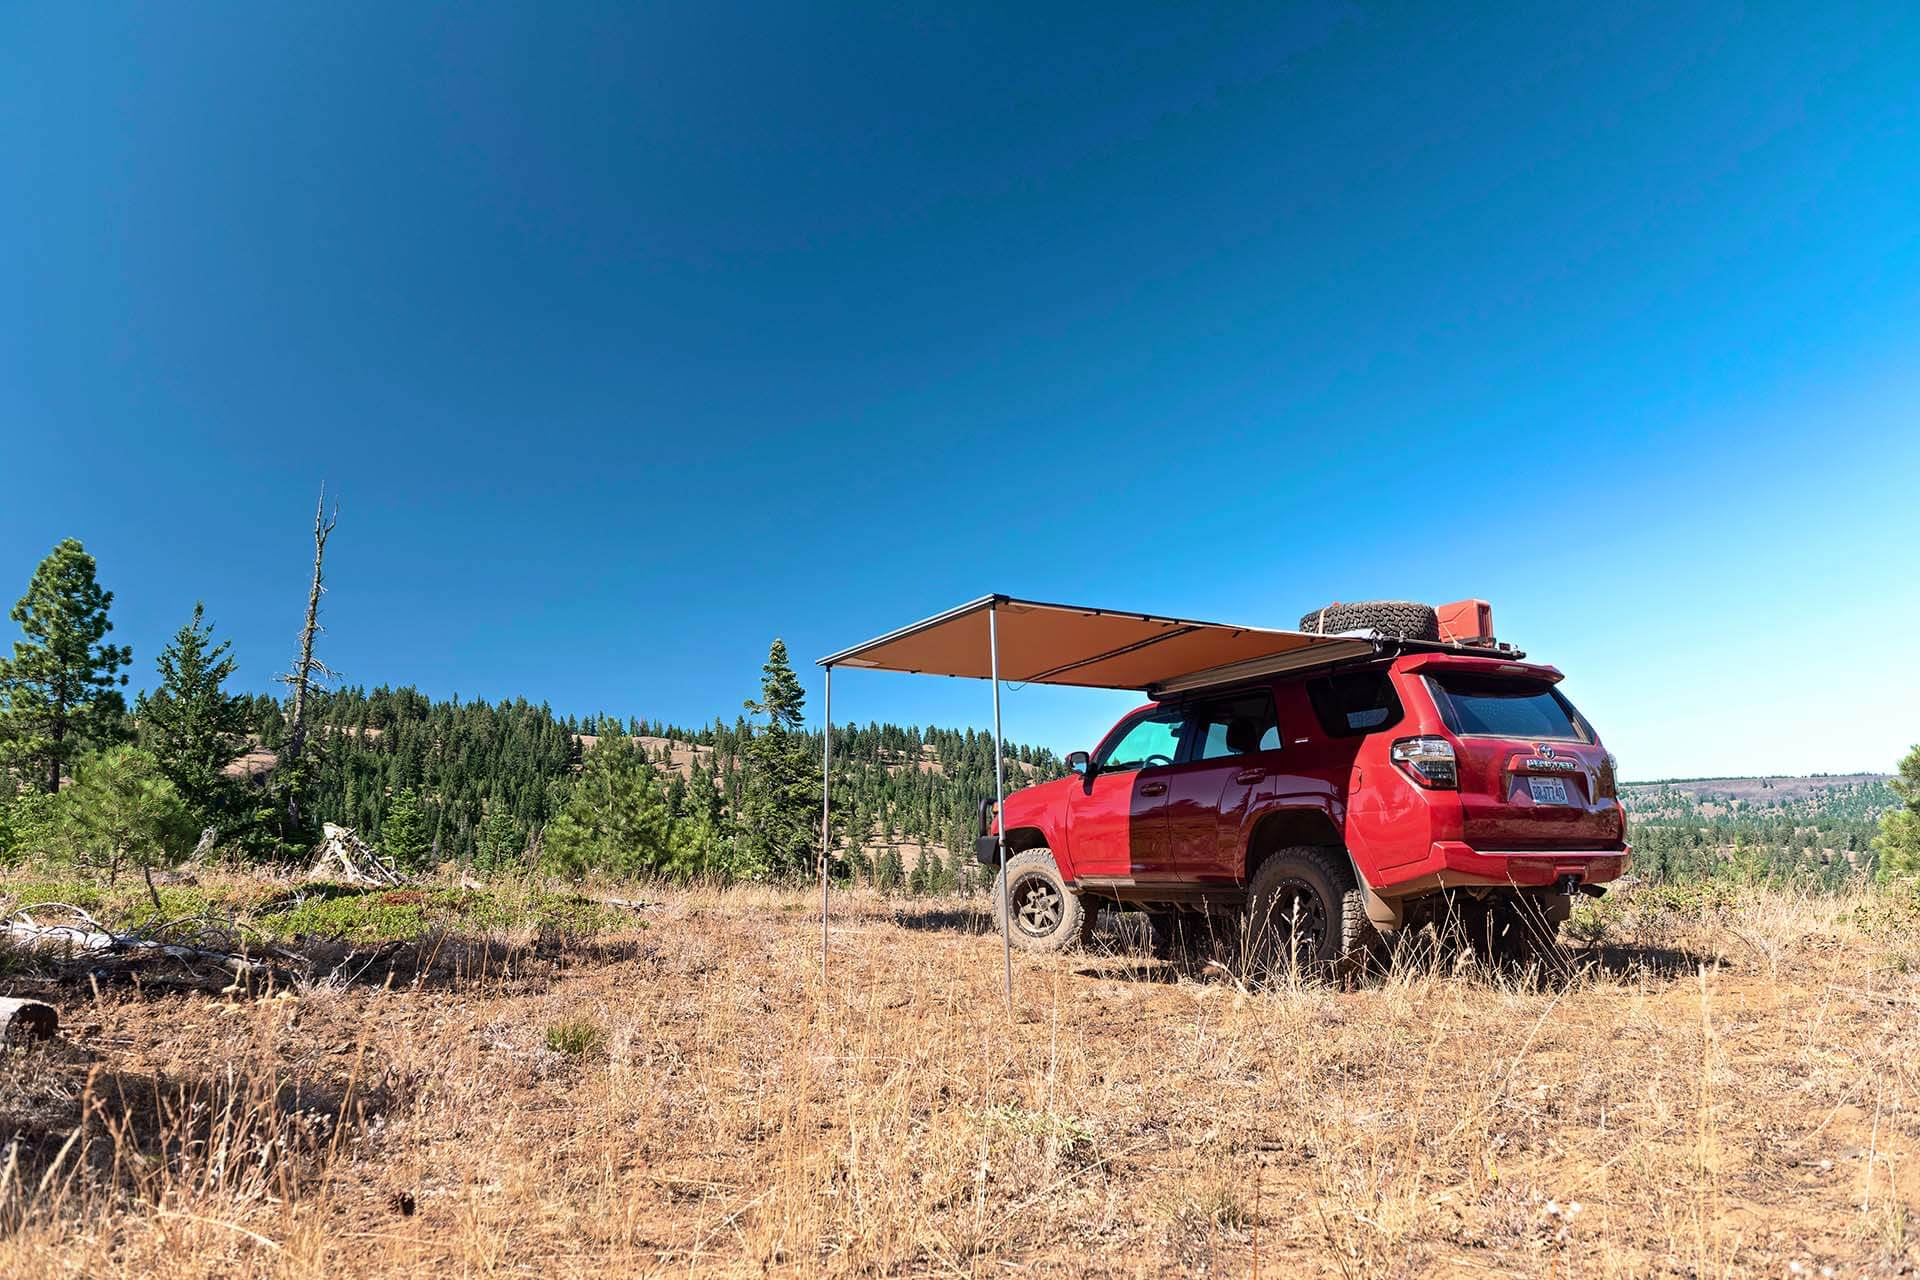 Toyota 4Runner with Awning extended